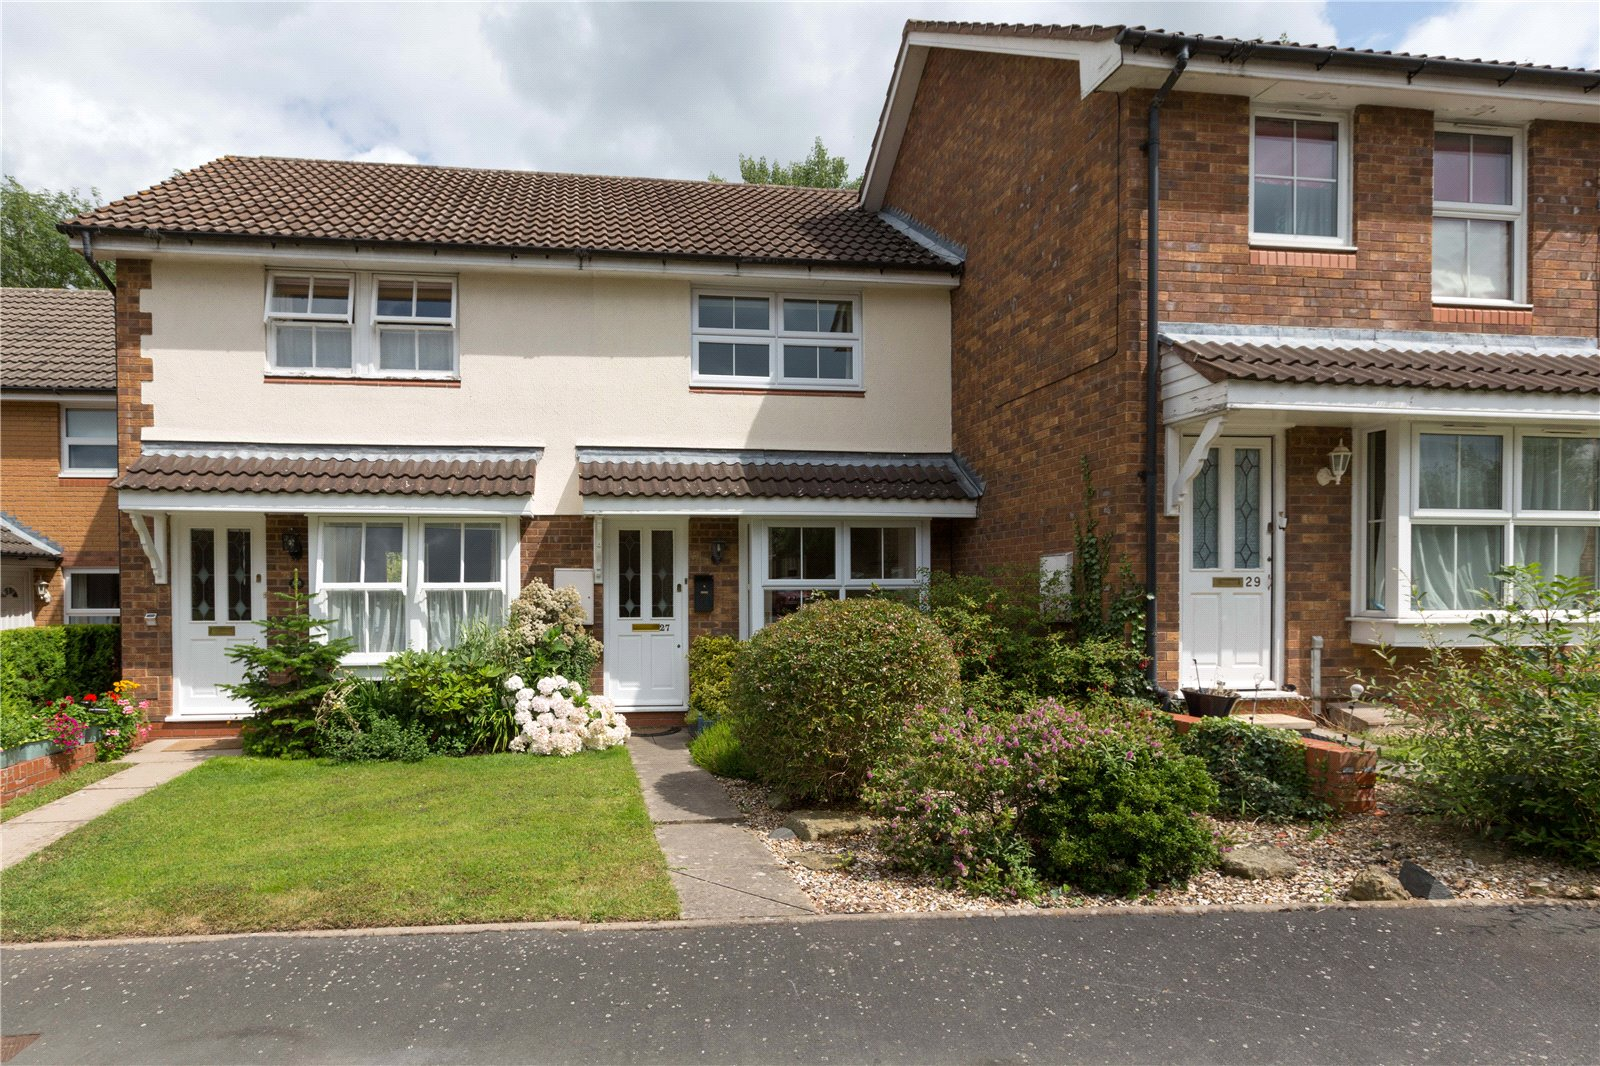 27 Langford Close, Ludlow, SY8